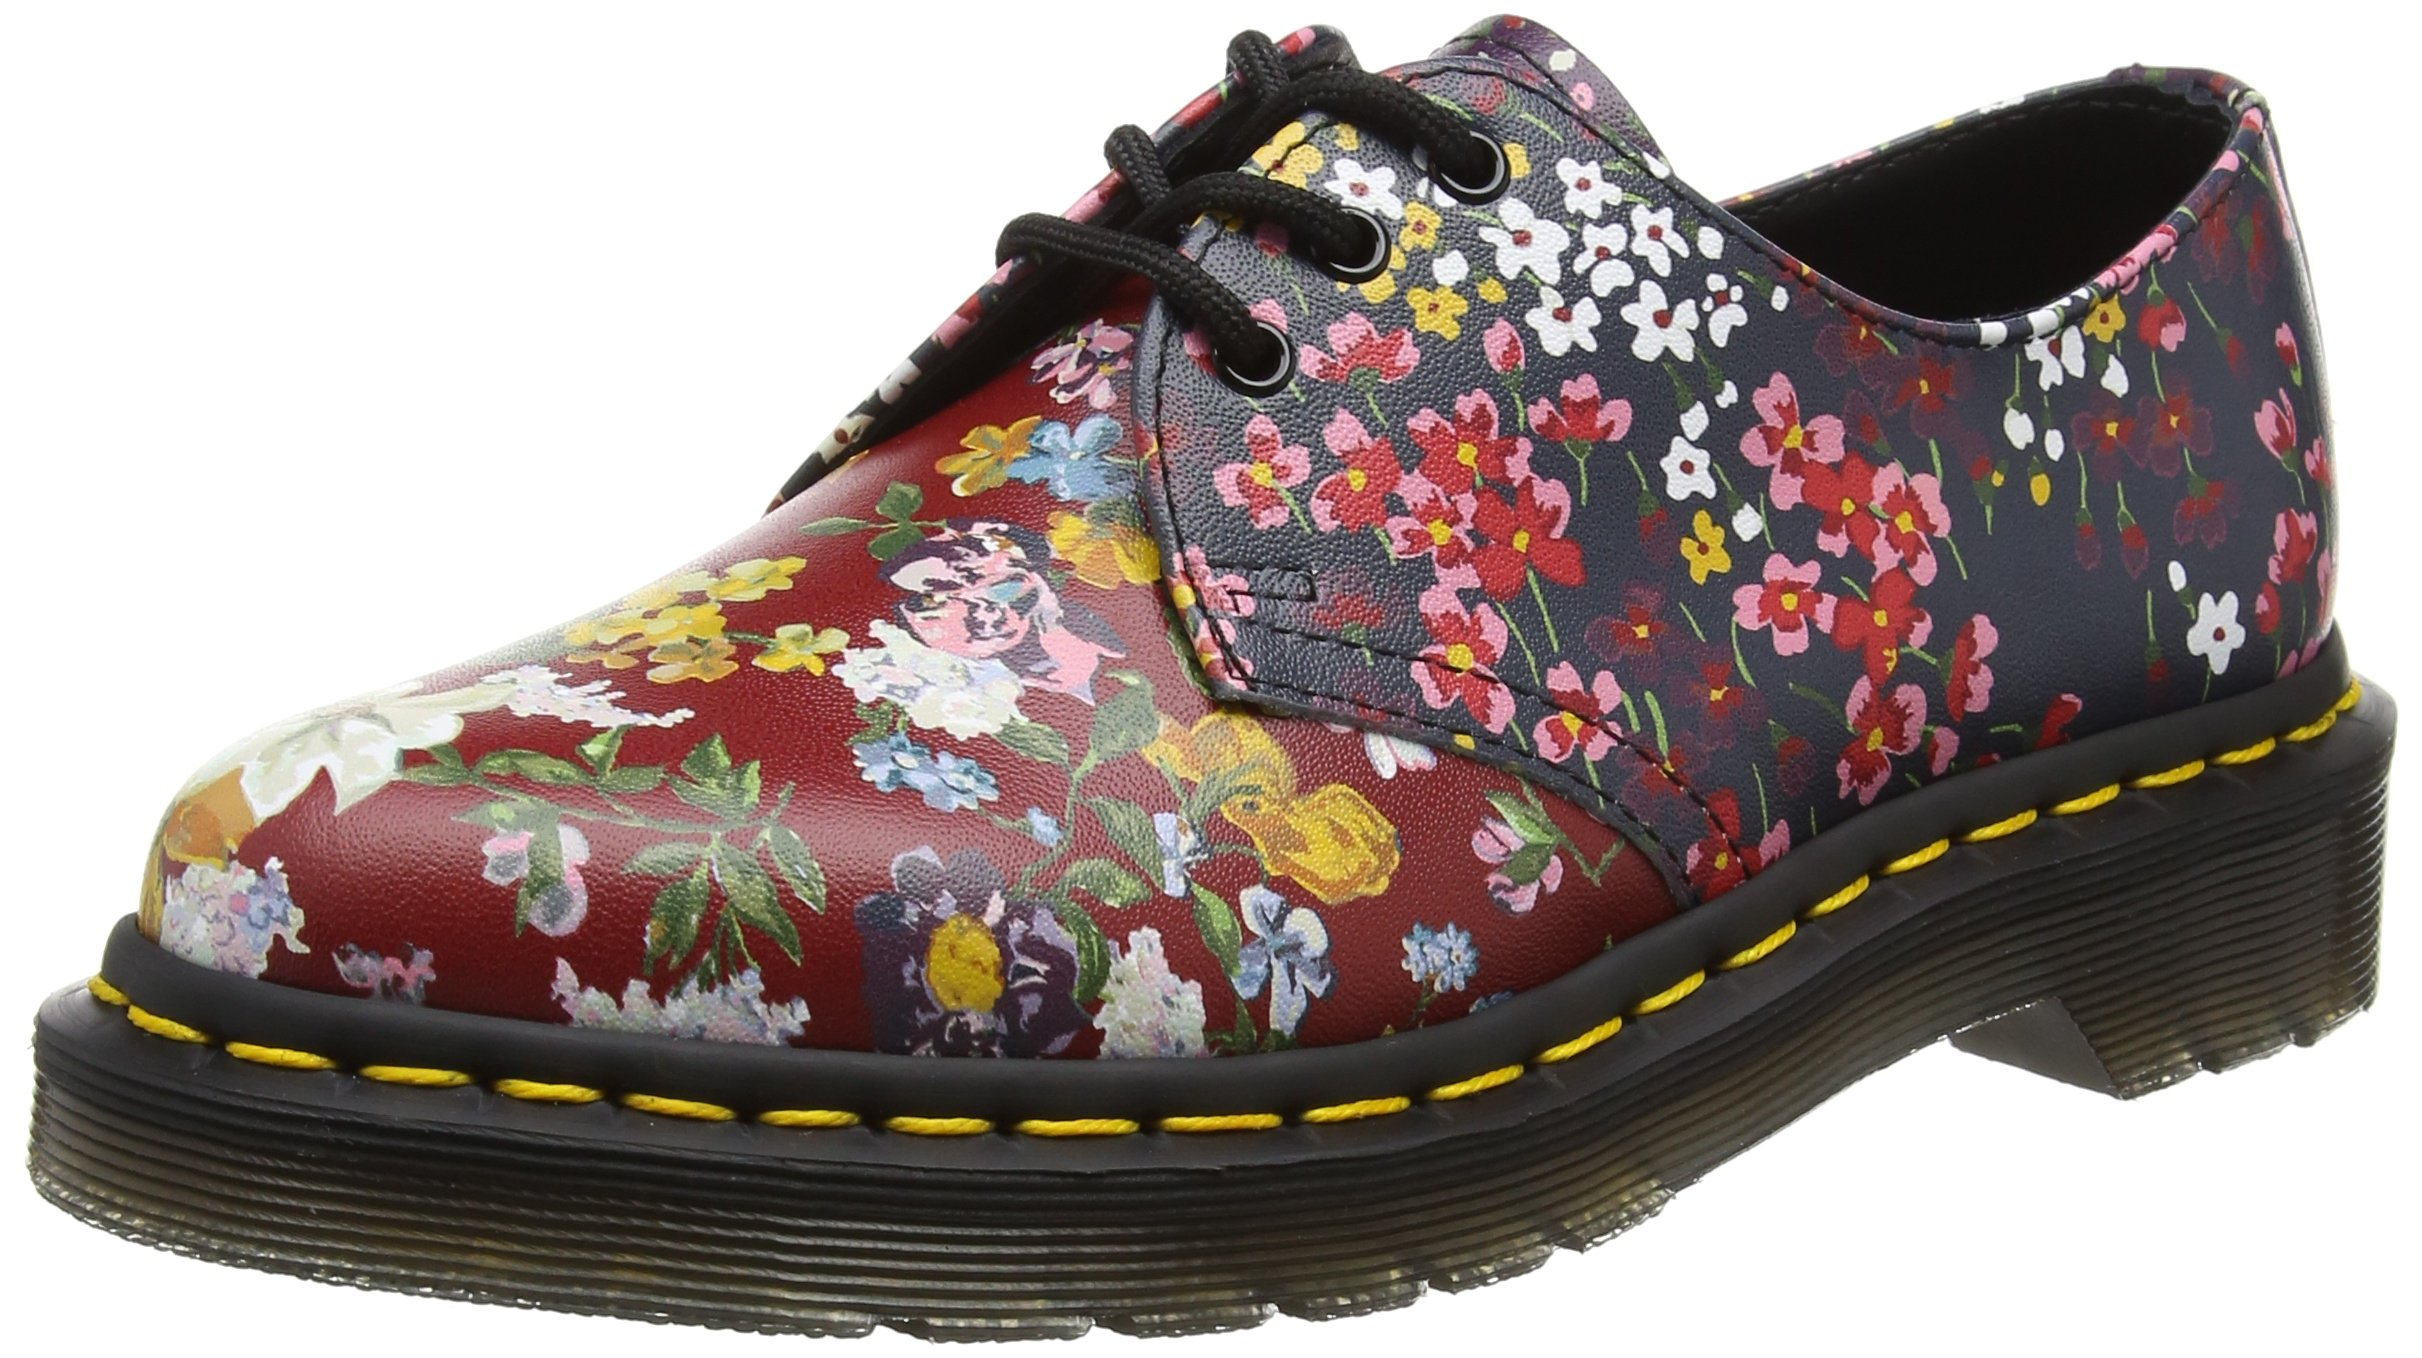 Dr. Martens Women's Floral 1461 Air-Cushioned Fashion Oxfords, Multi, Leather, 6 M UK, 8 M US